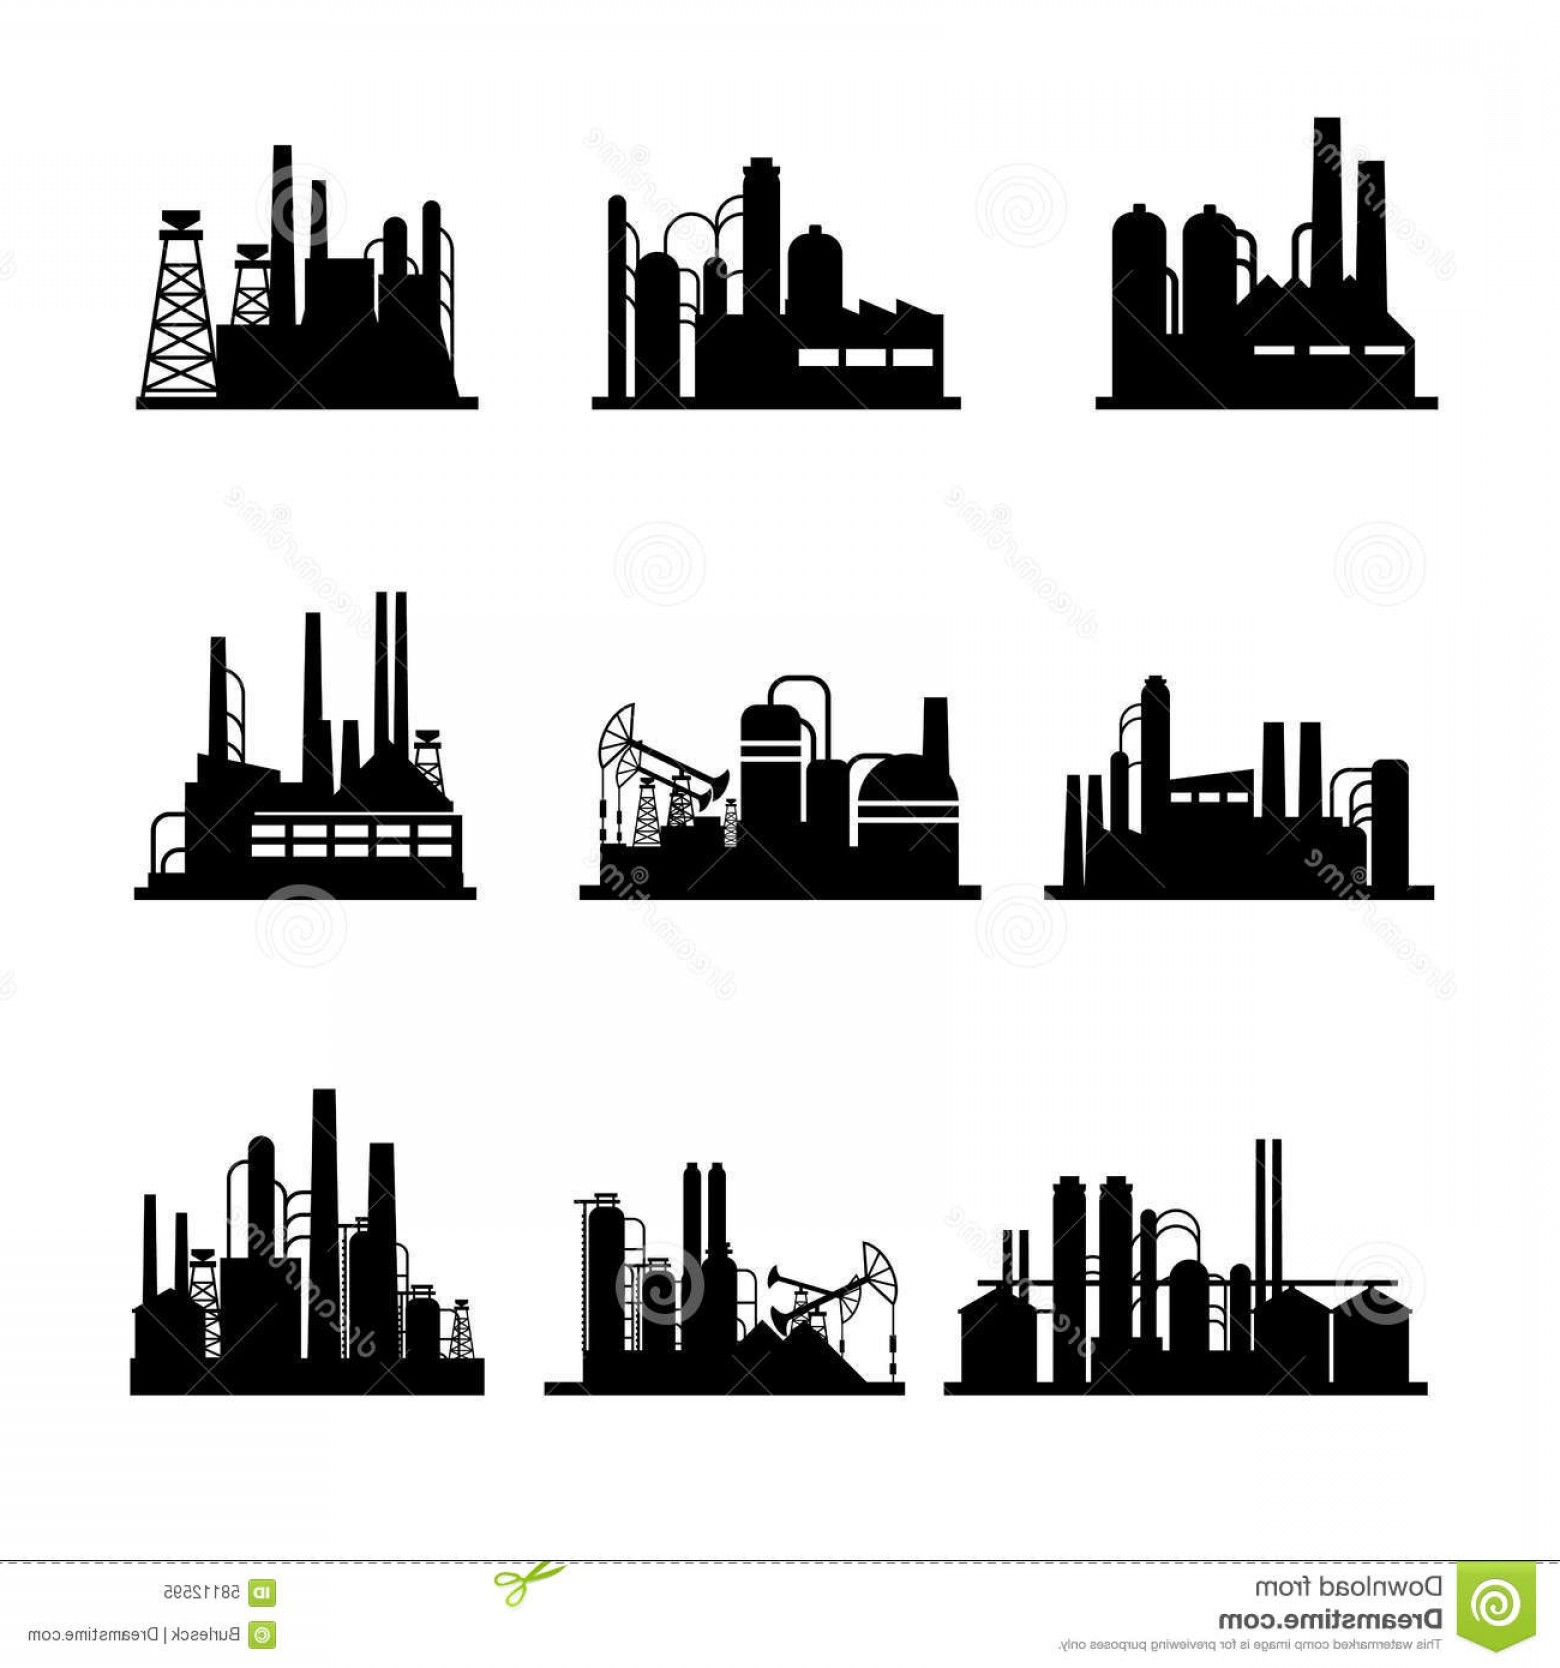 Factory Vector Skyline: Stock Illustration Oil Refinery Oil Processing Plant Icons Industrial Factory Technology Power Vector Illustration Image